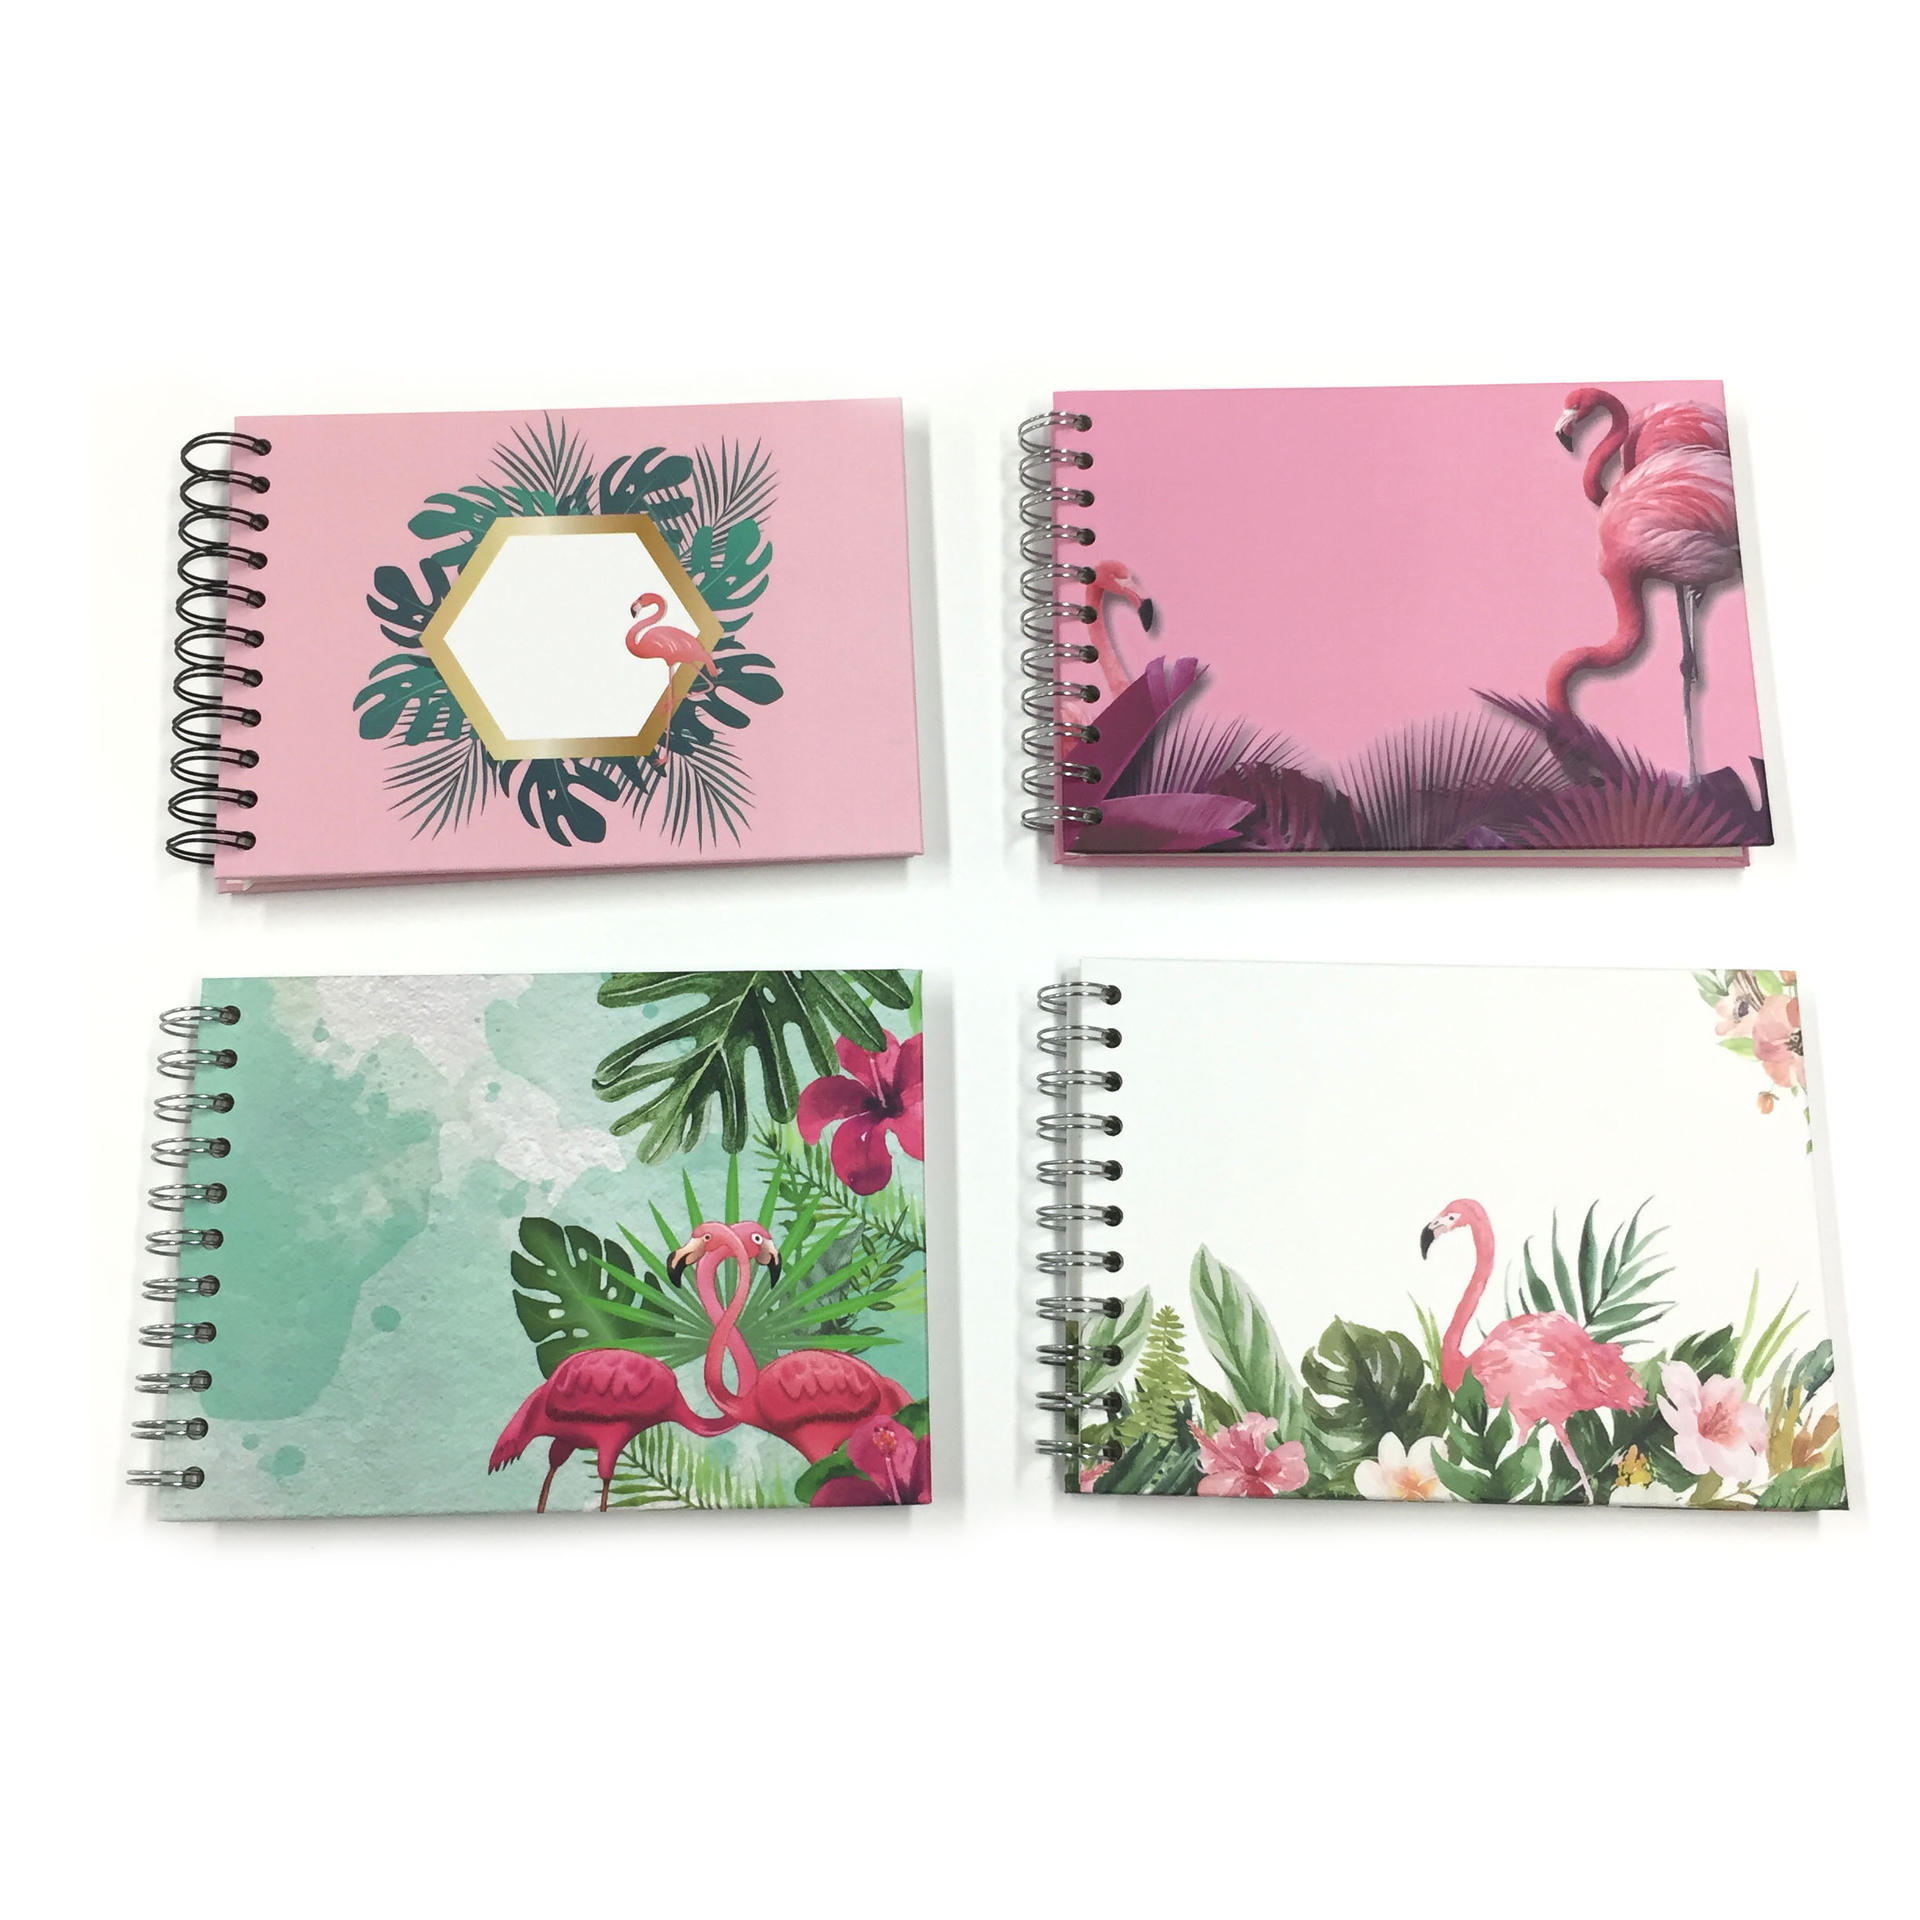 Self Adhesive Pages Photo Album Flamingo Print  Scrapbook With 20 Pages